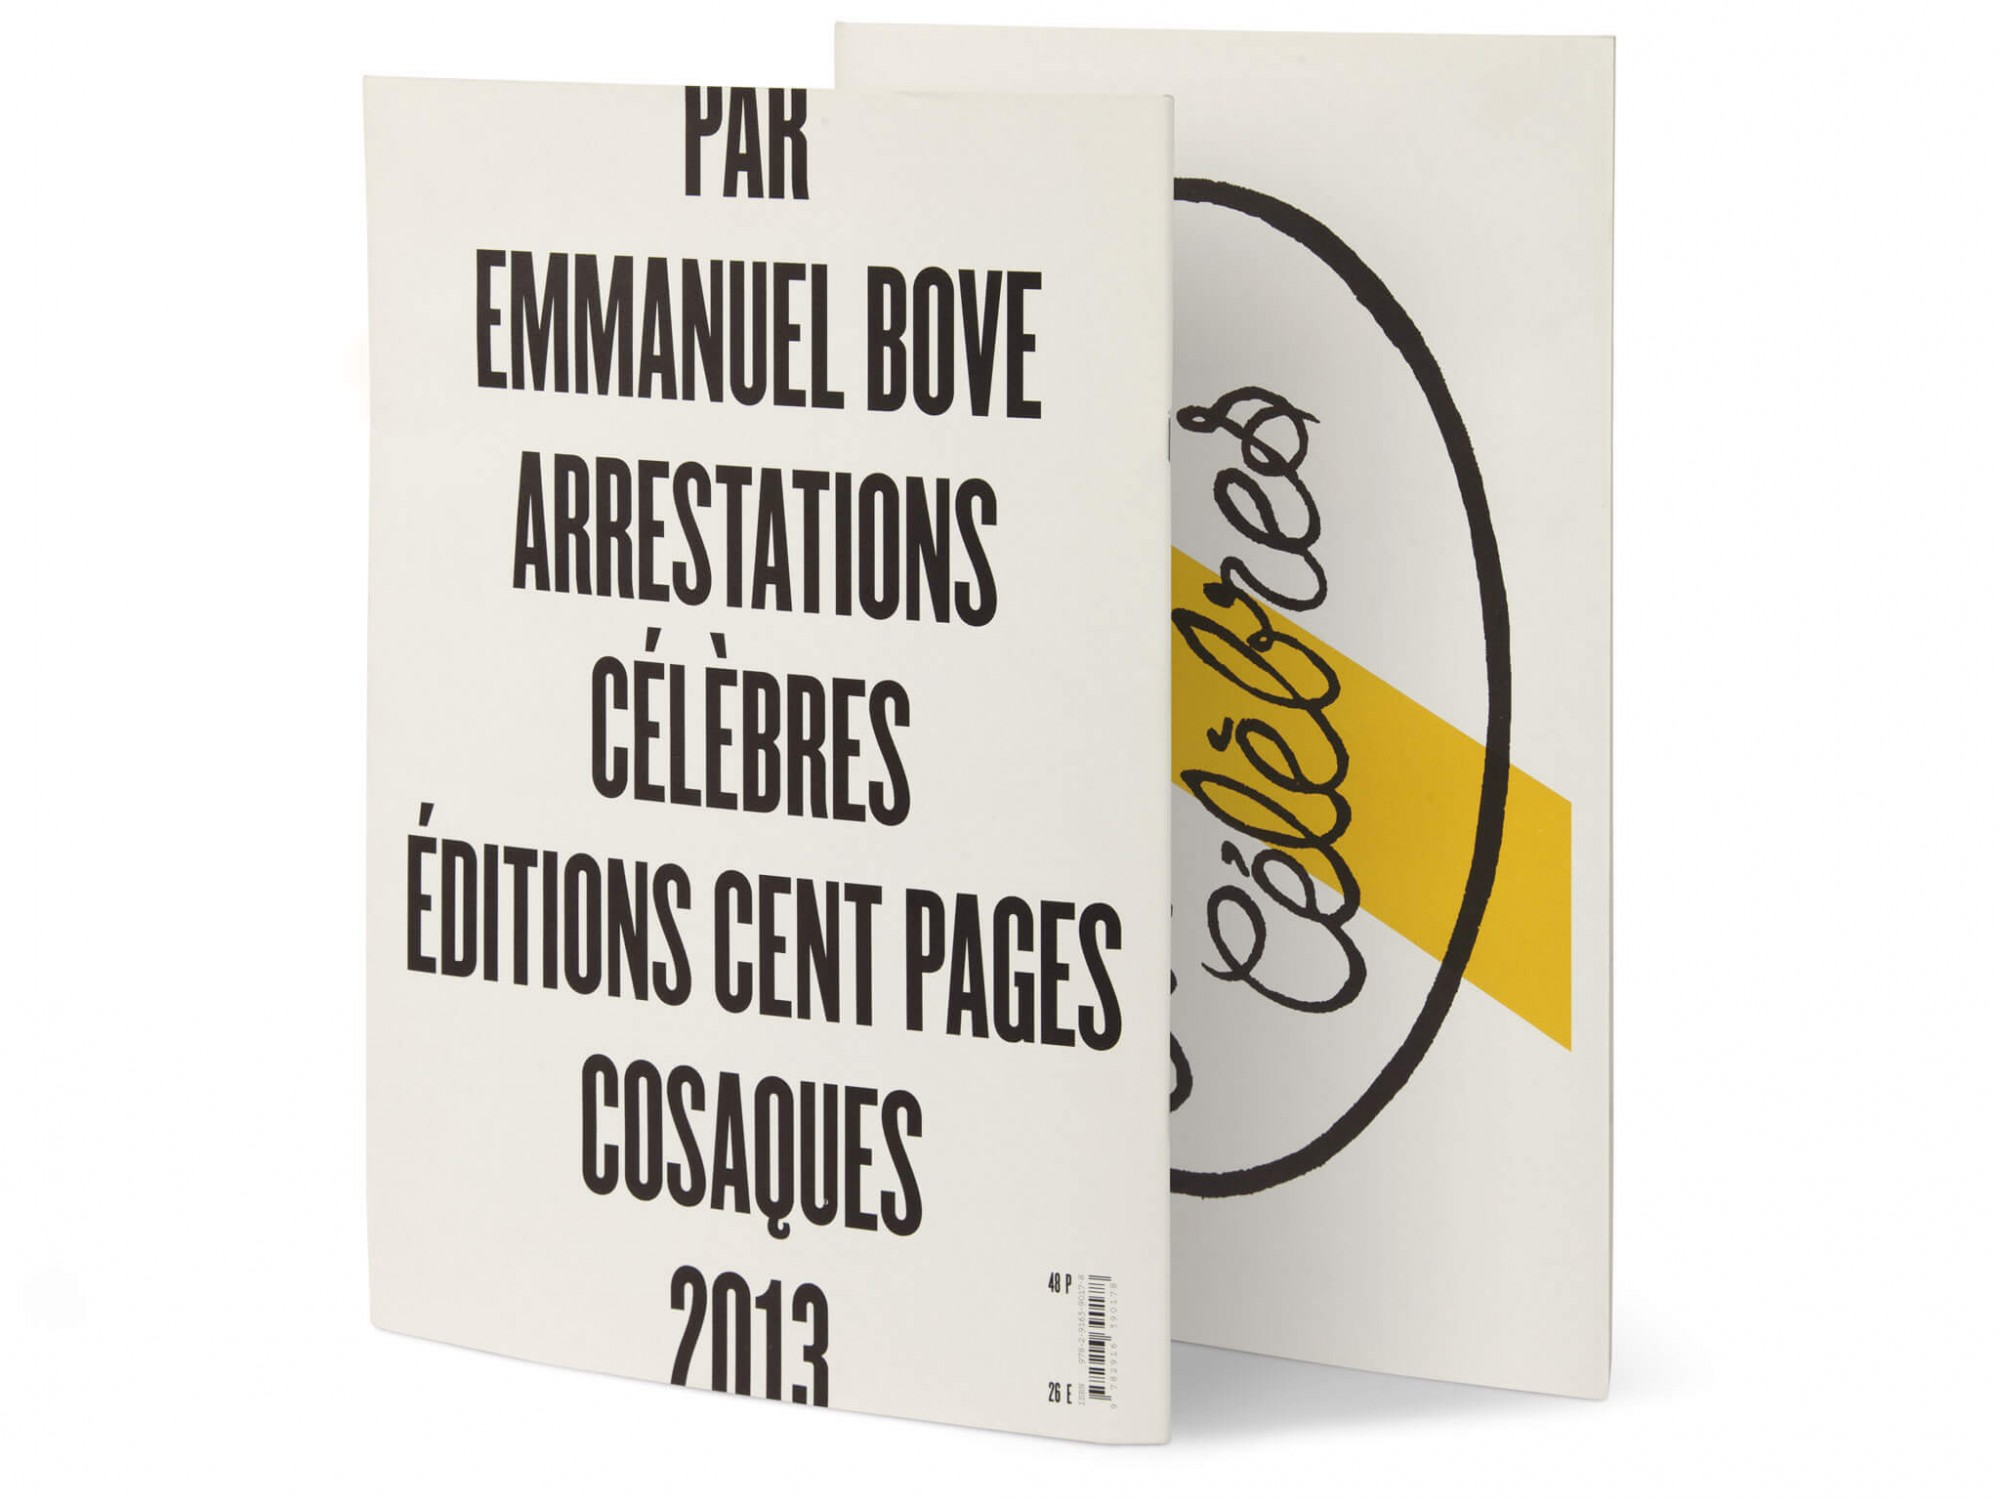 Emmanuel Bove Arrestations célèbres Éditions cent pages collection Cosaques Couverture